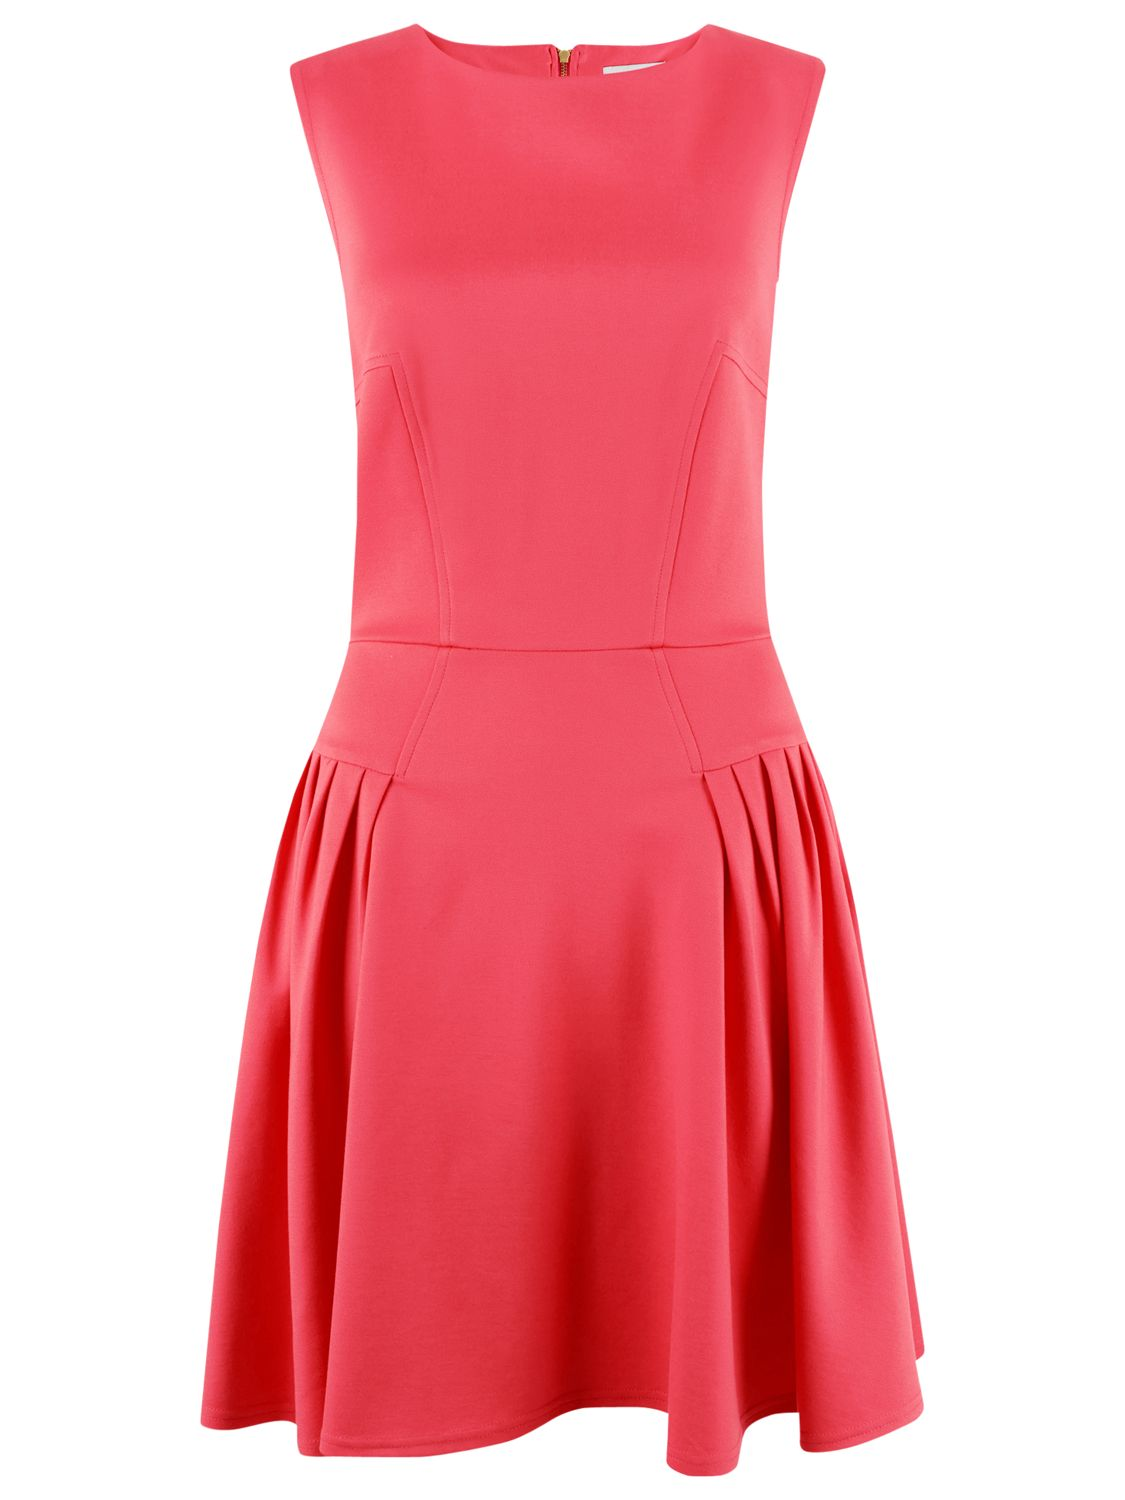 Closet Closet Fit And Flare Dress, Coral